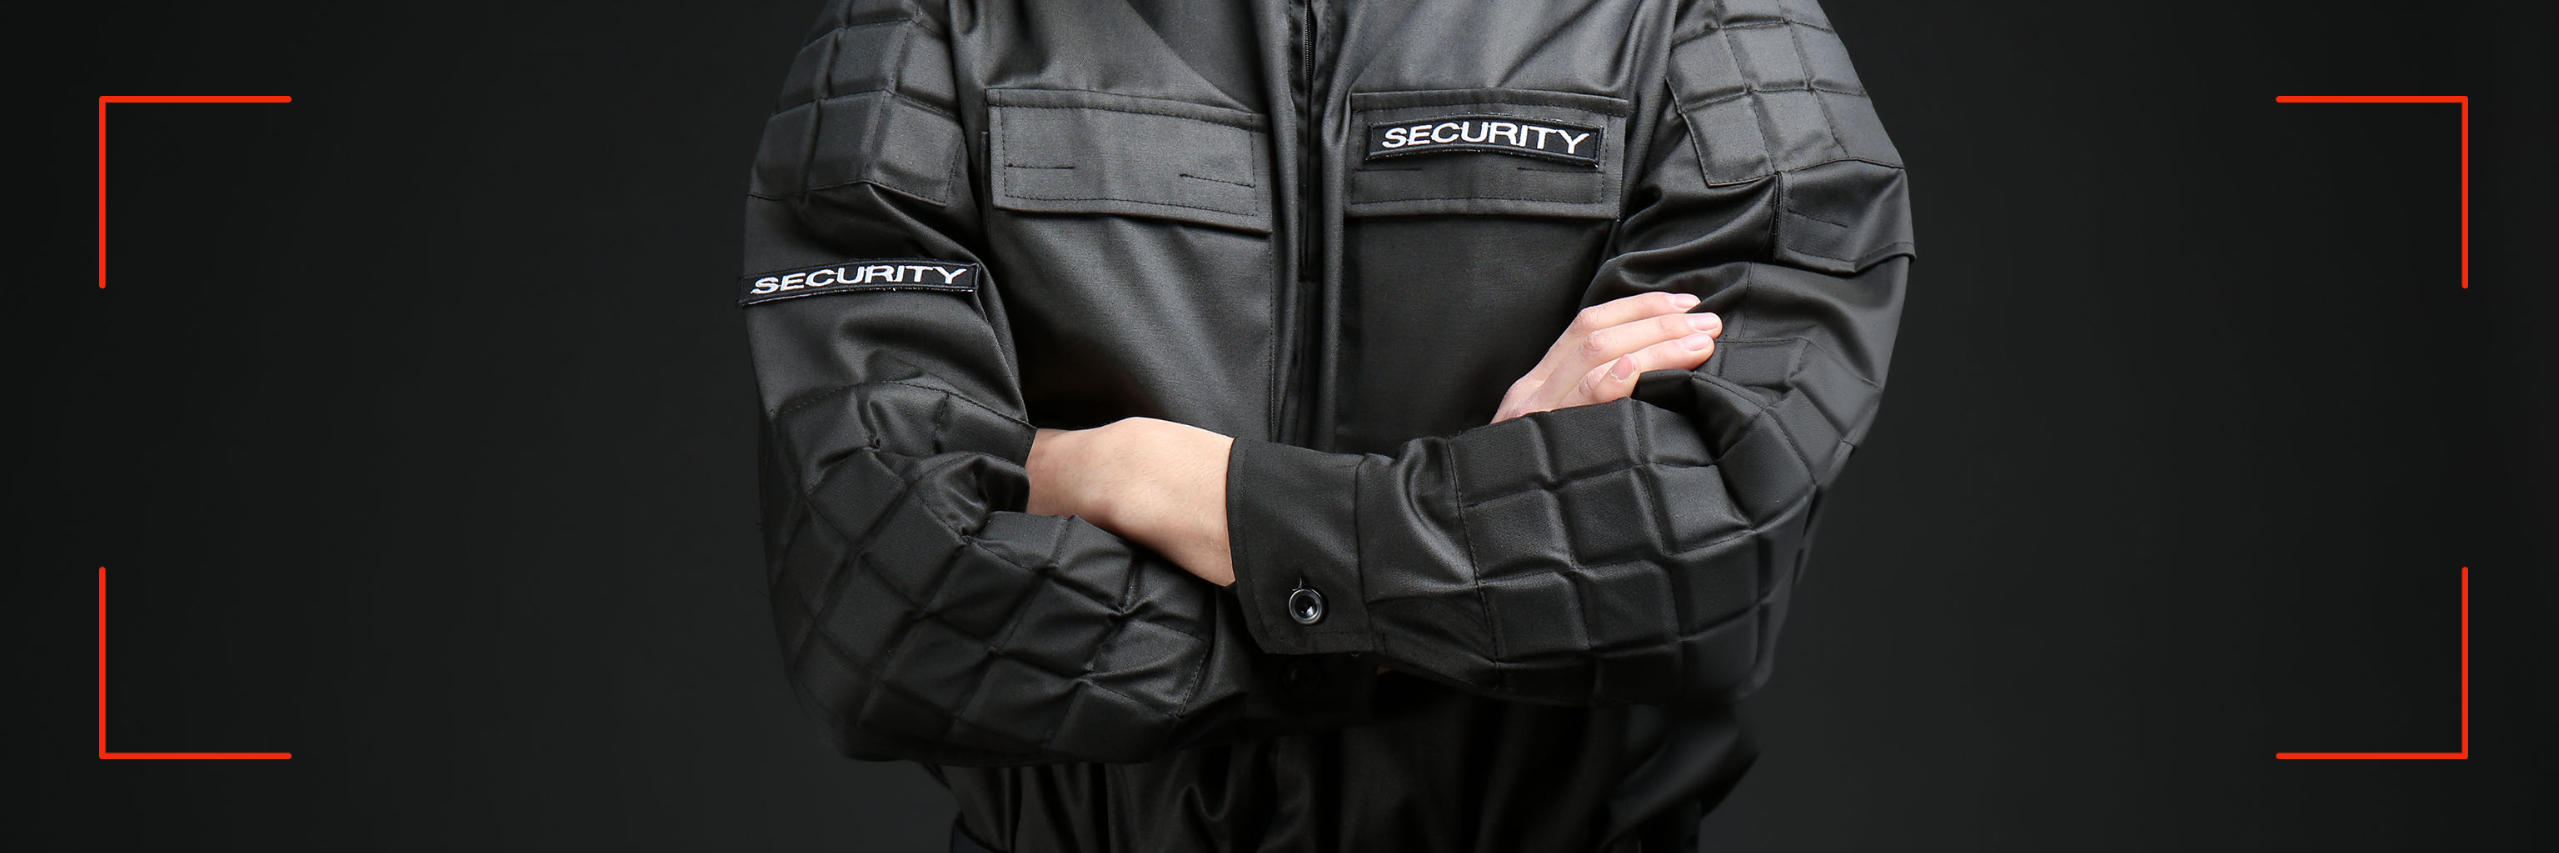 Security Guard Training Courses